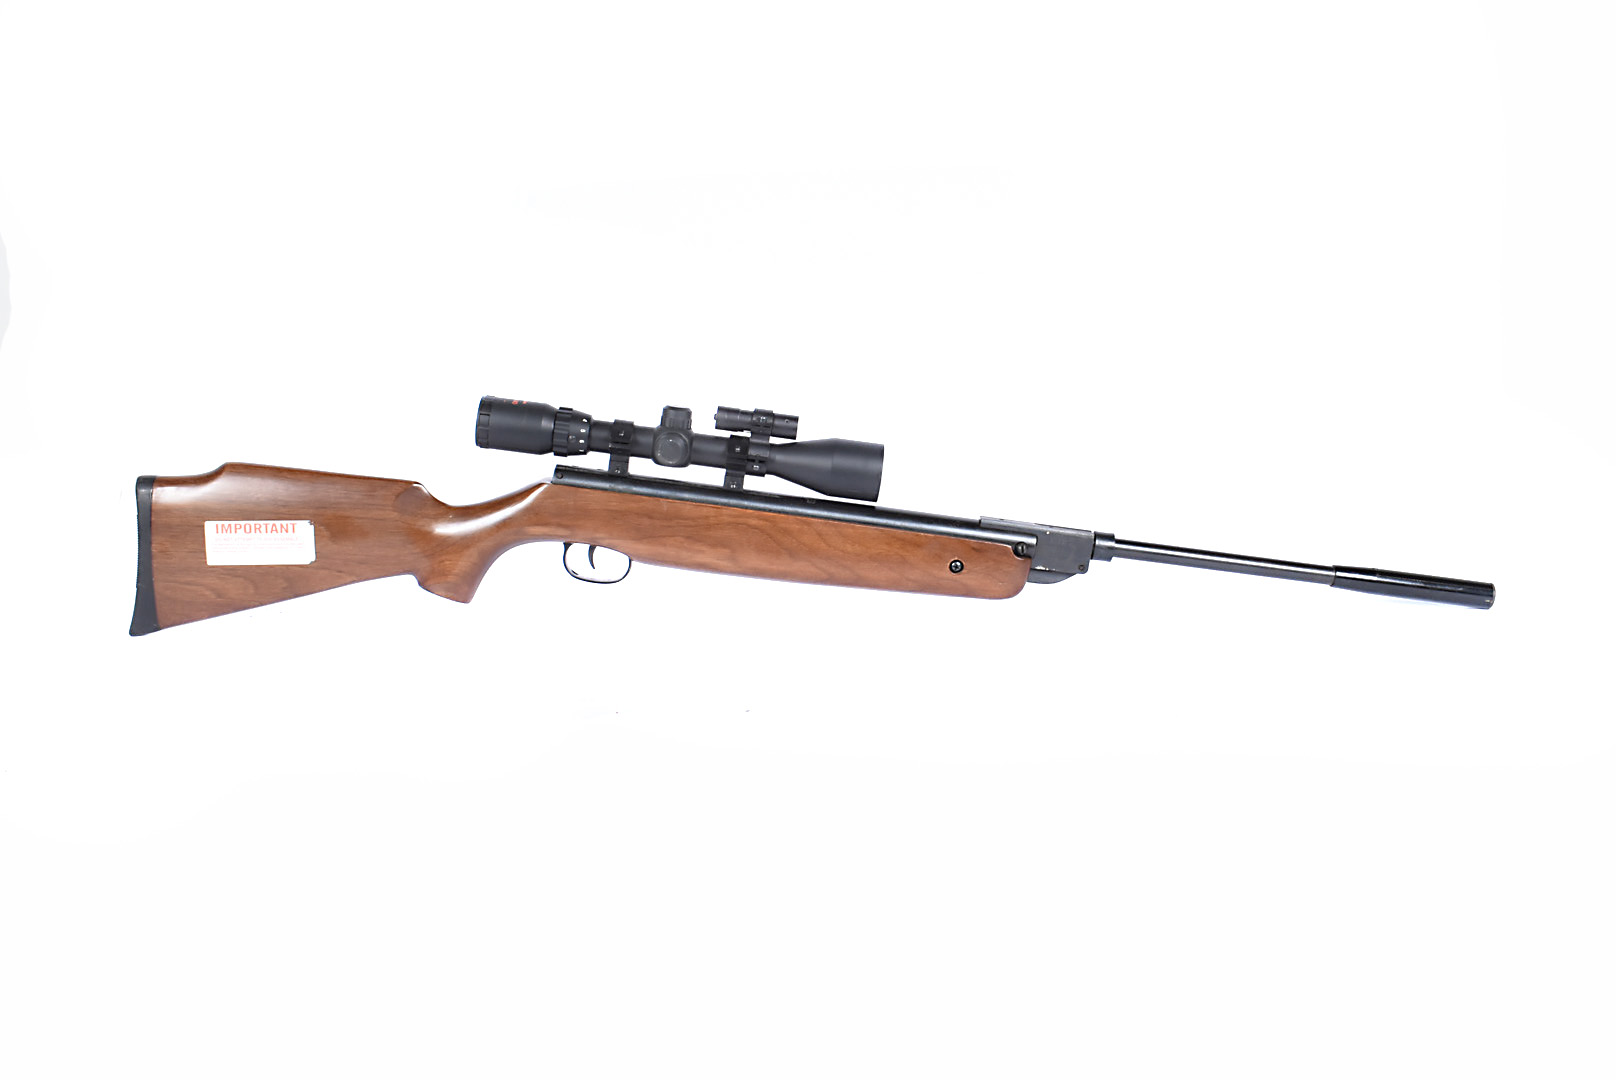 An SMK XS-B20 .22 air rifle, serial 0300527, with break barrel action, complete with SMK 3-9x40